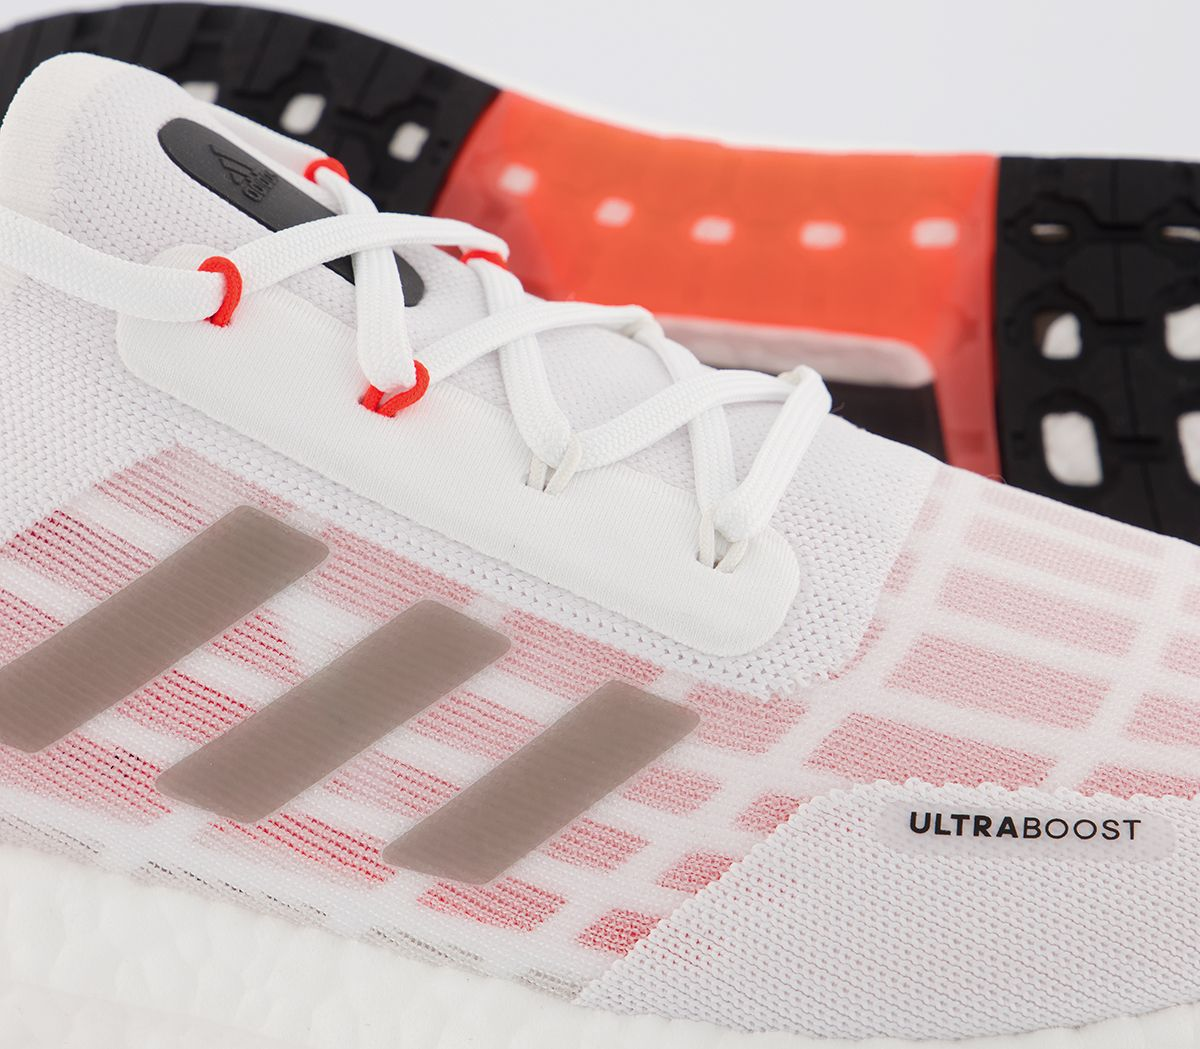 Adidas-ultraboost-S-RDY-Baskets-Rouge-Blanc-Baskets-Chaussures miniature 3